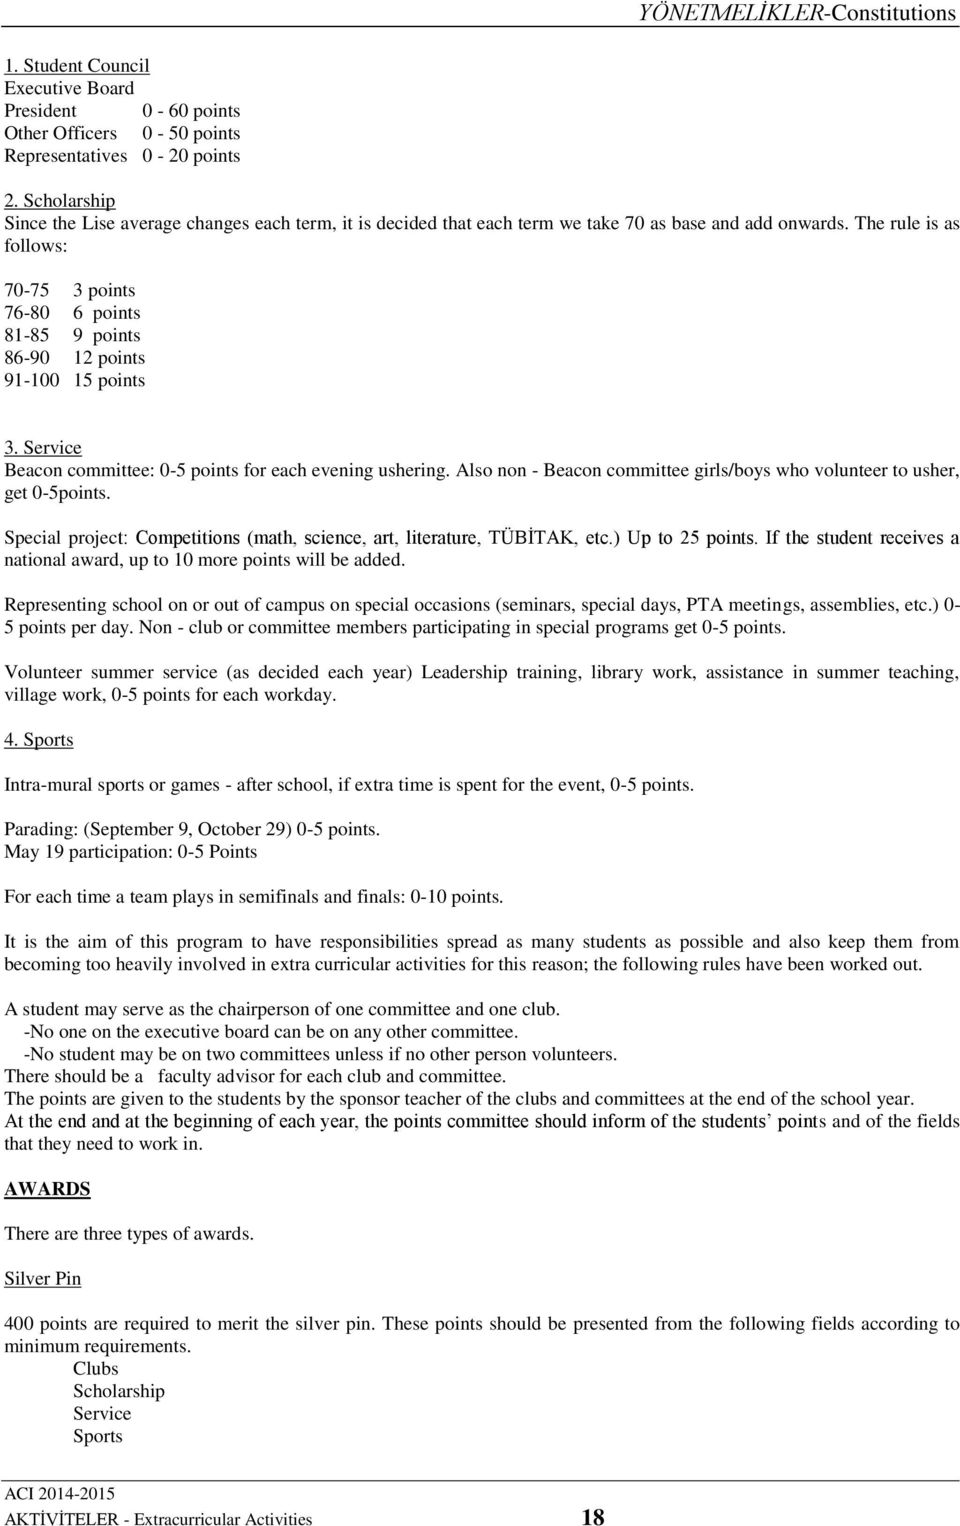 The rule is as follows: 70-75 3 points 76-80 6 points 81-85 9 points 86-90 12 points 91-100 15 points 3. Service Beacon committee: 0-5 points for each evening ushering.